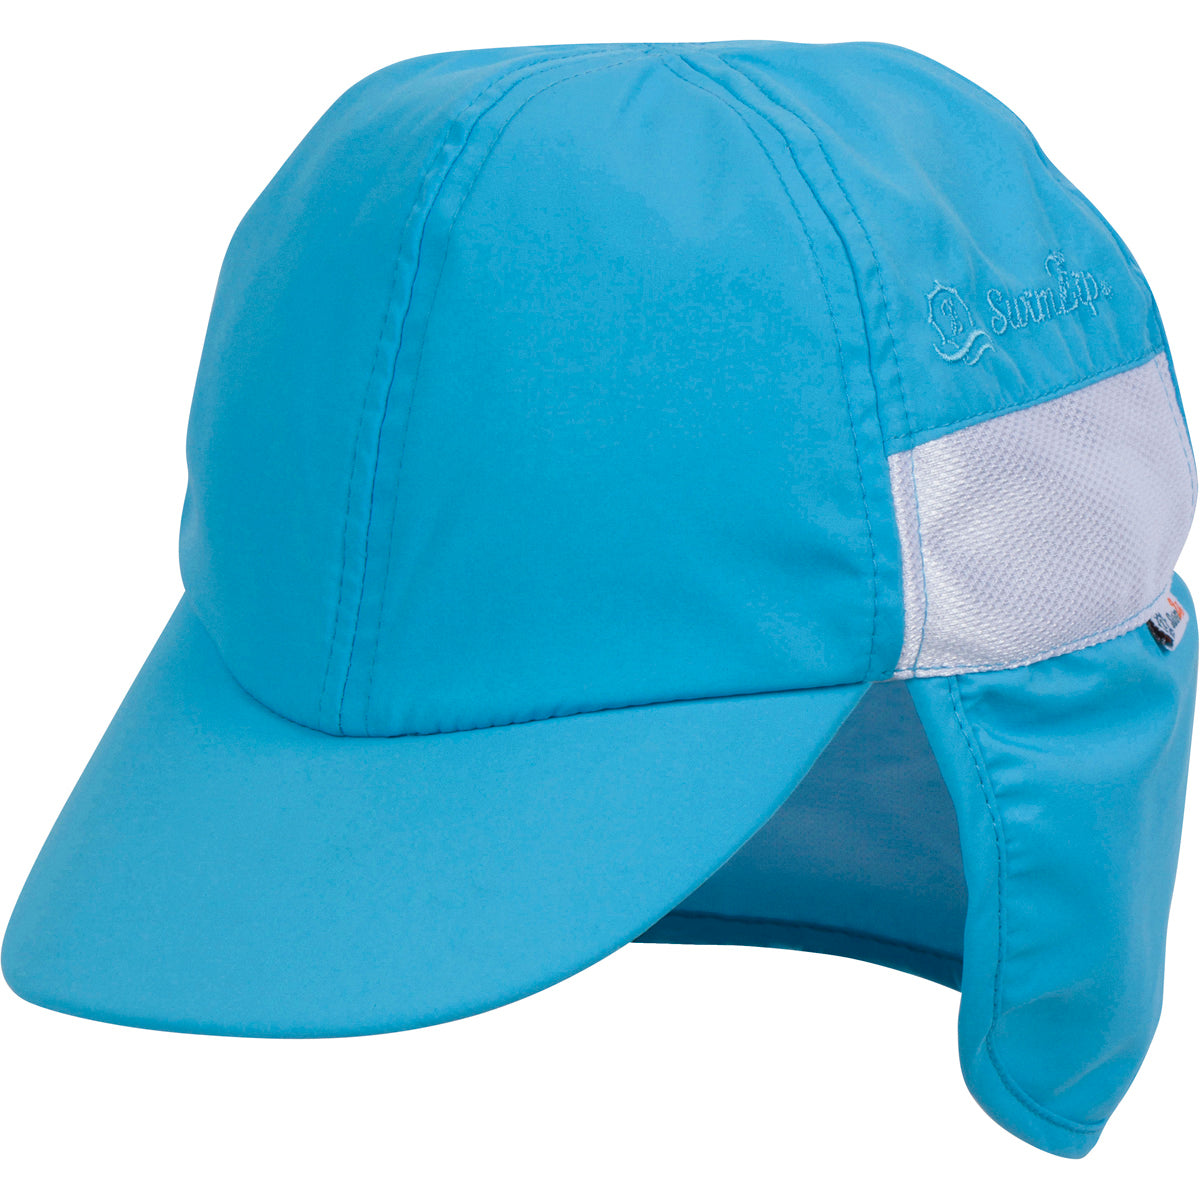 Baby Hat with Neck Flap   Best Sun Hat for Baby Adjustable